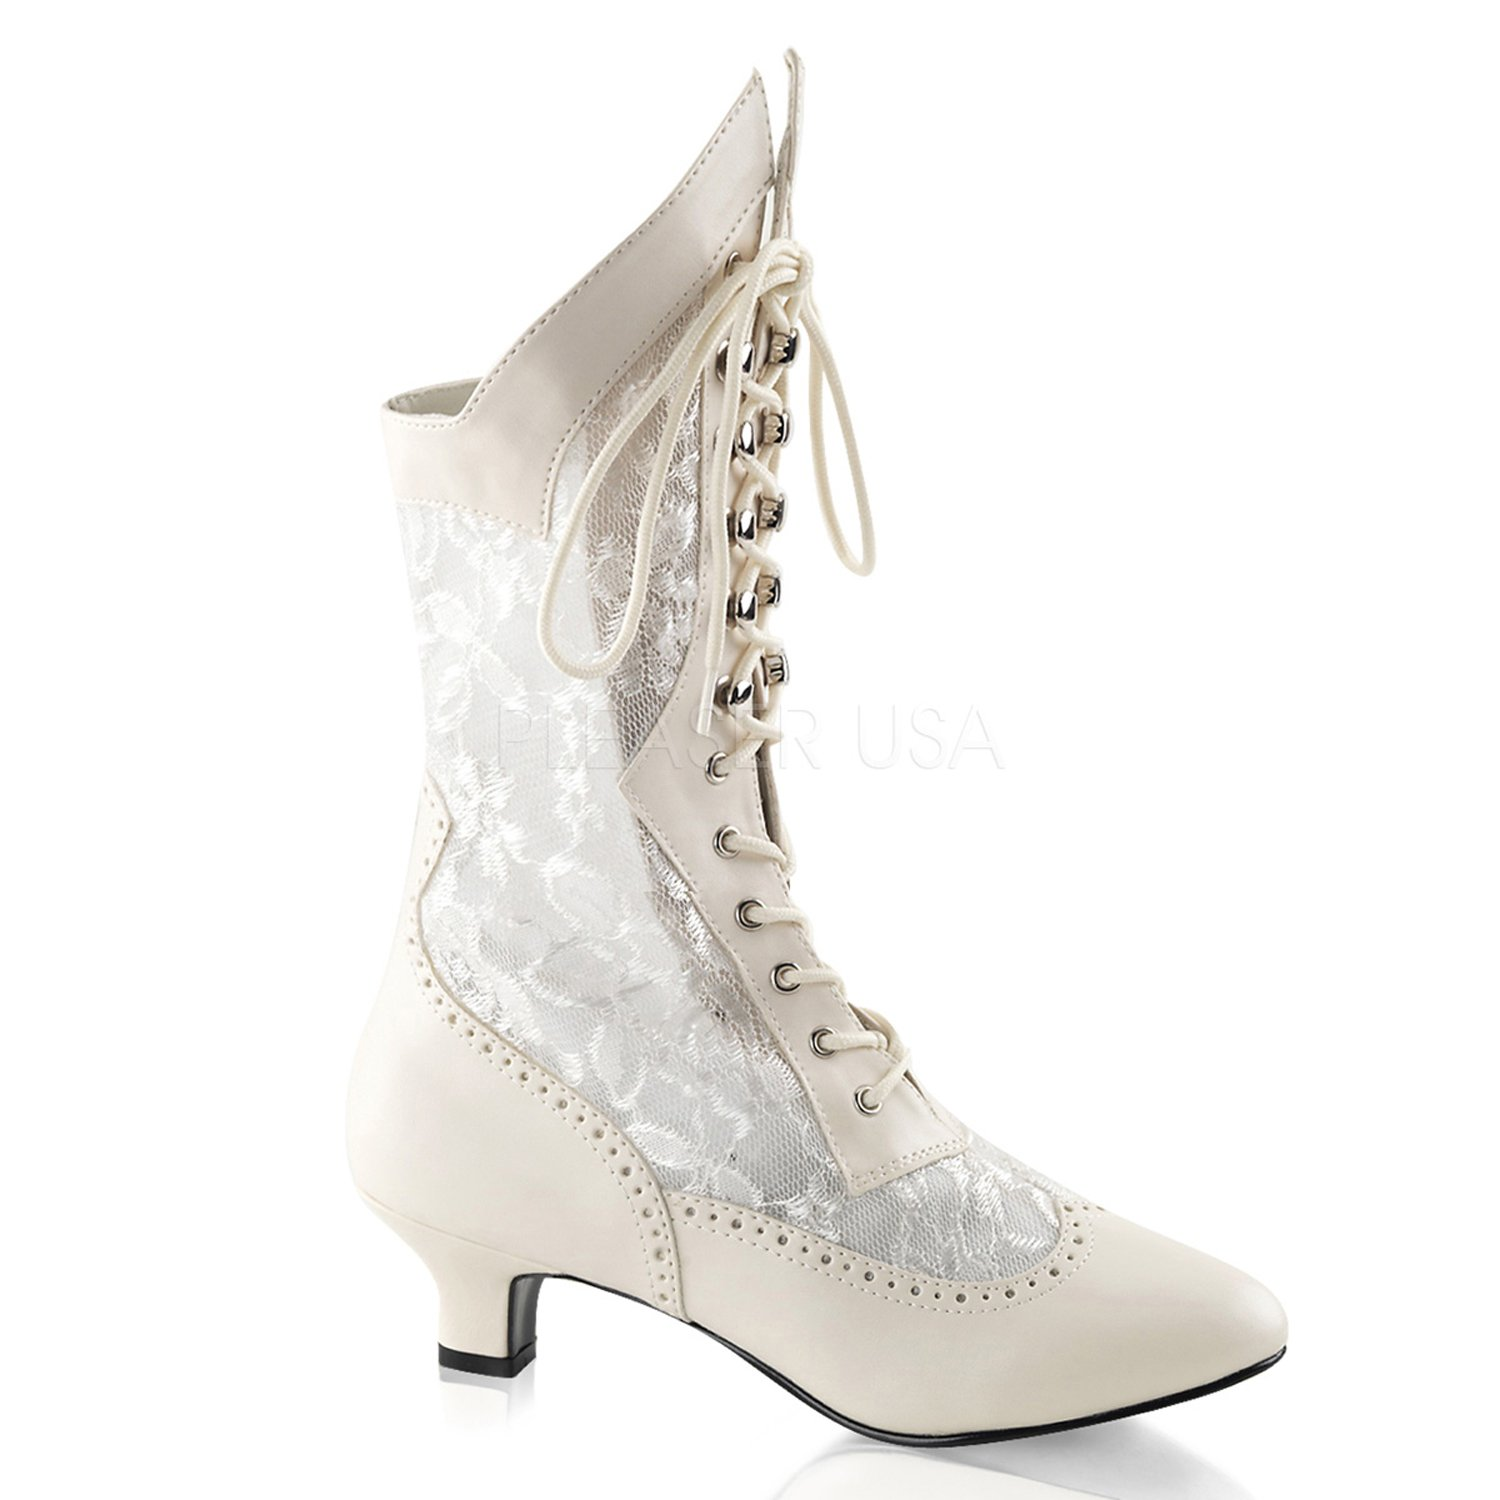 Victorian Lace Insert High Wedding Boots Lace Goth Granny Boots 115 B0042QMDV2 6|Ivory